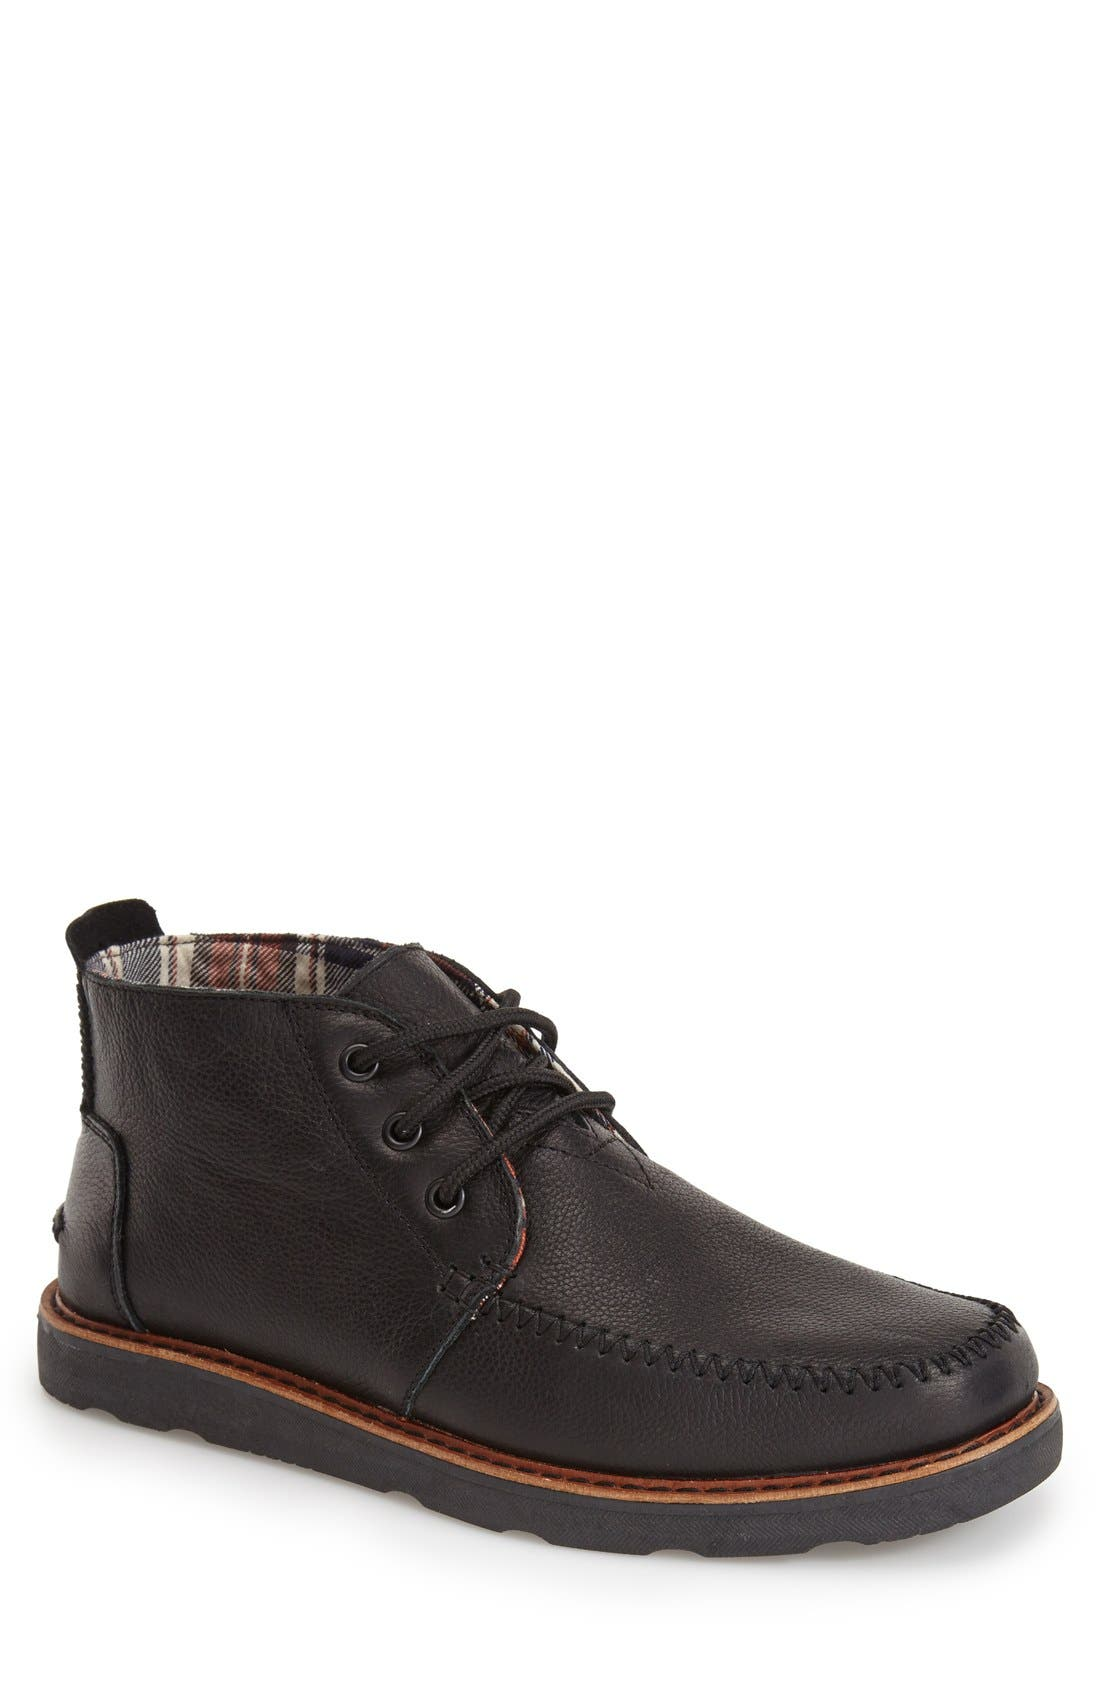 Waterproof Chukka Boot,                         Main,                         color, 001